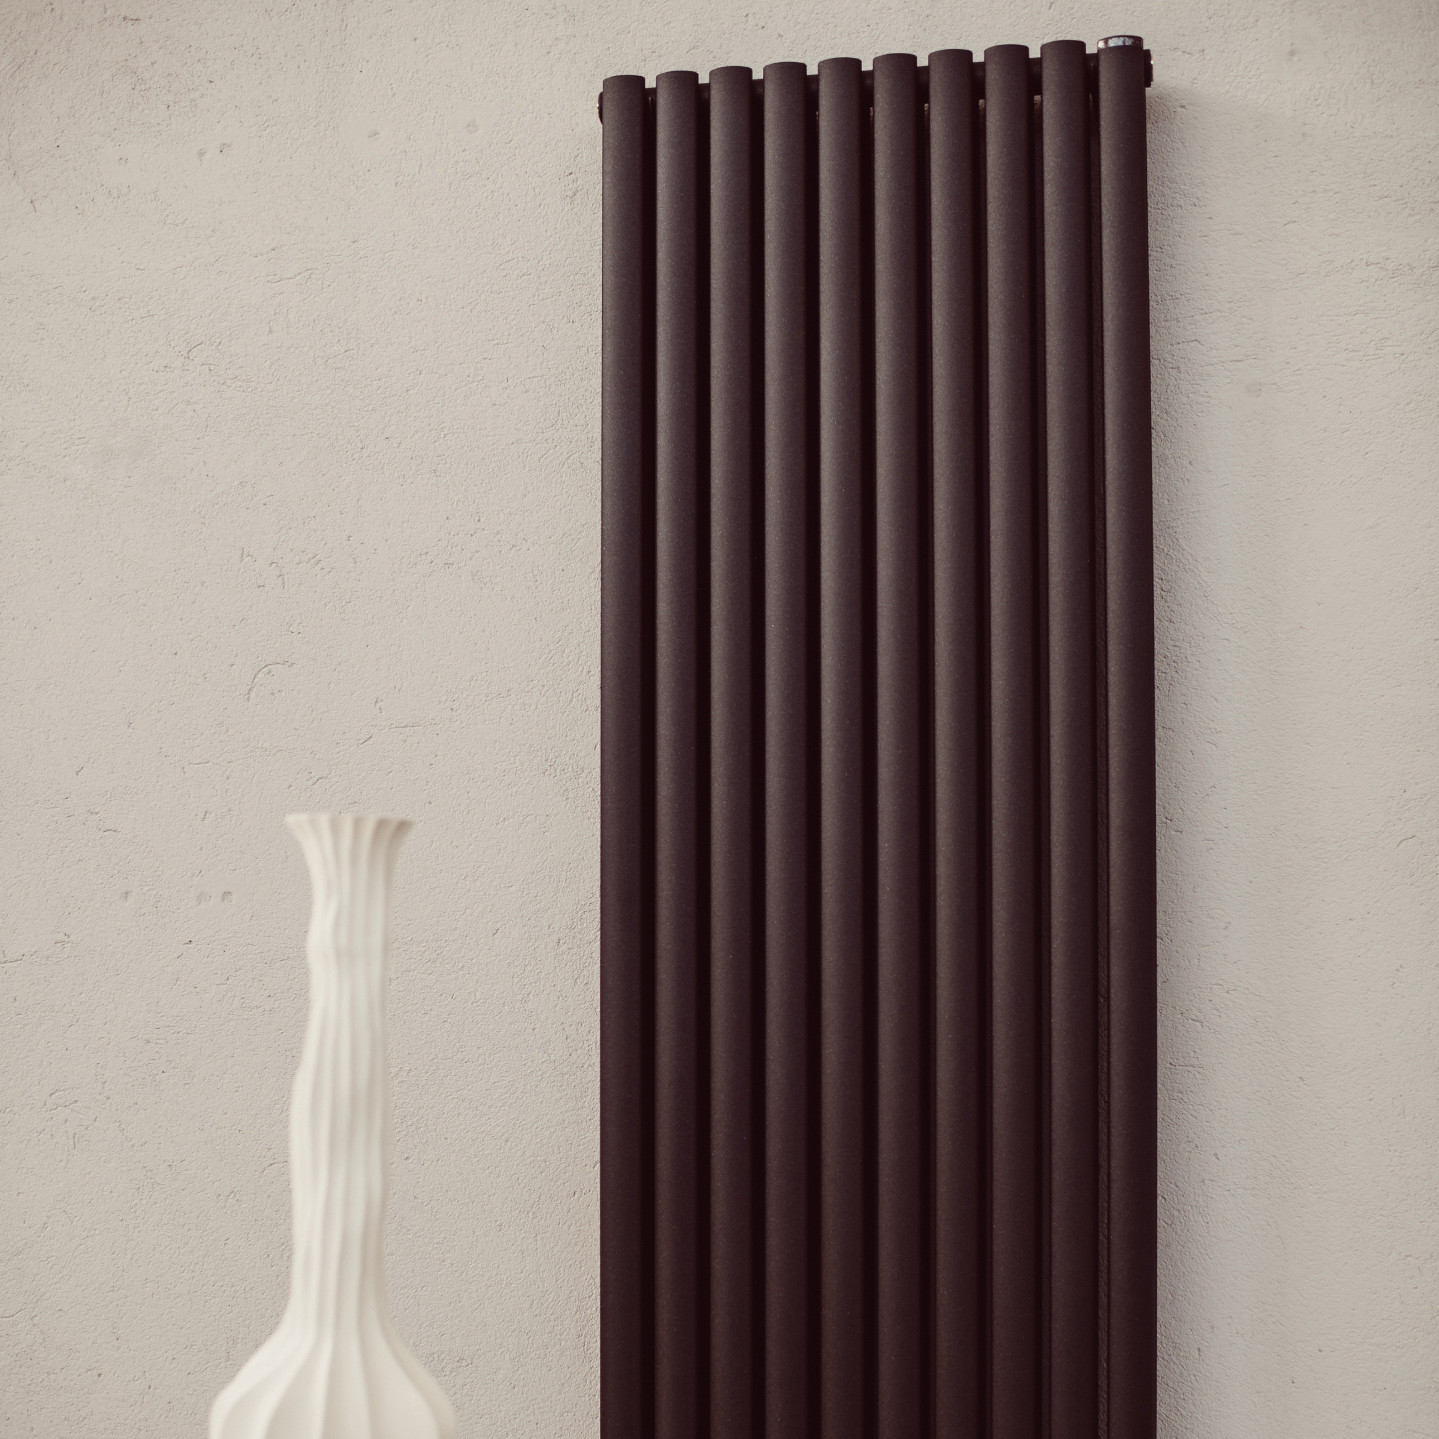 radiateur vertical blanc coloré apside d graziano radiators